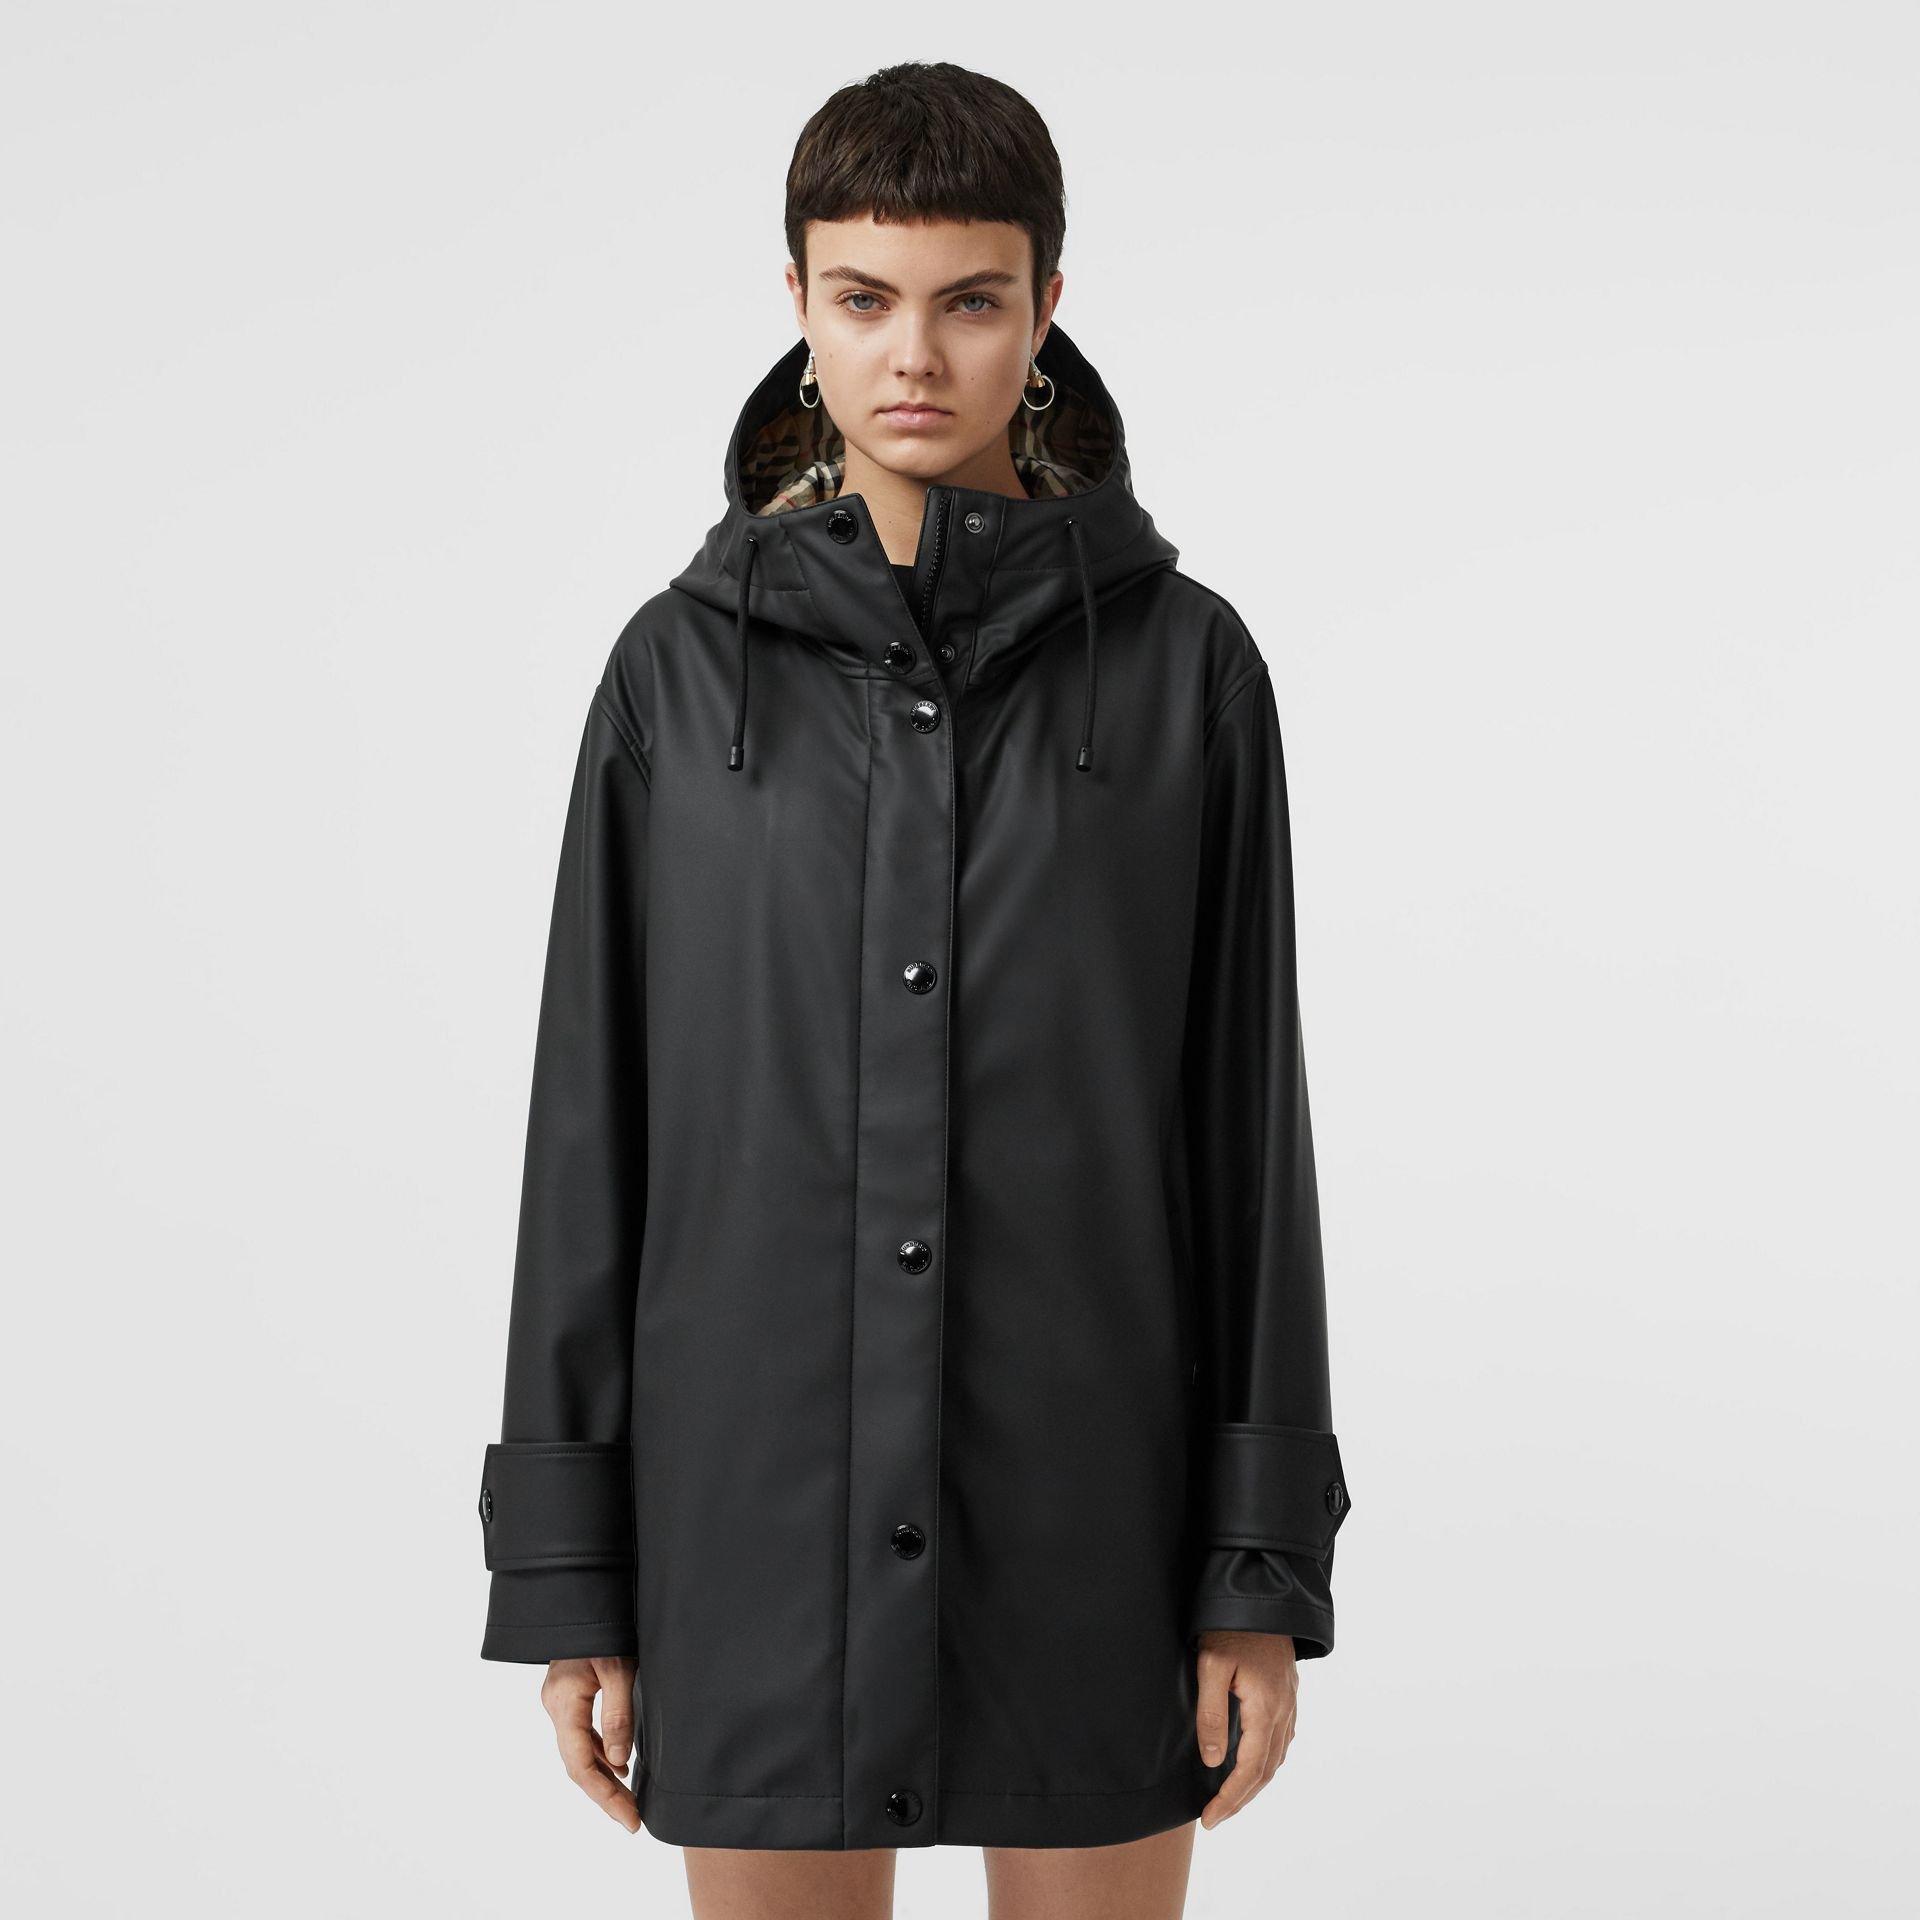 Logo Print Showerproof Hooded Coat in Black/white - Women | Burberry - gallery image 4